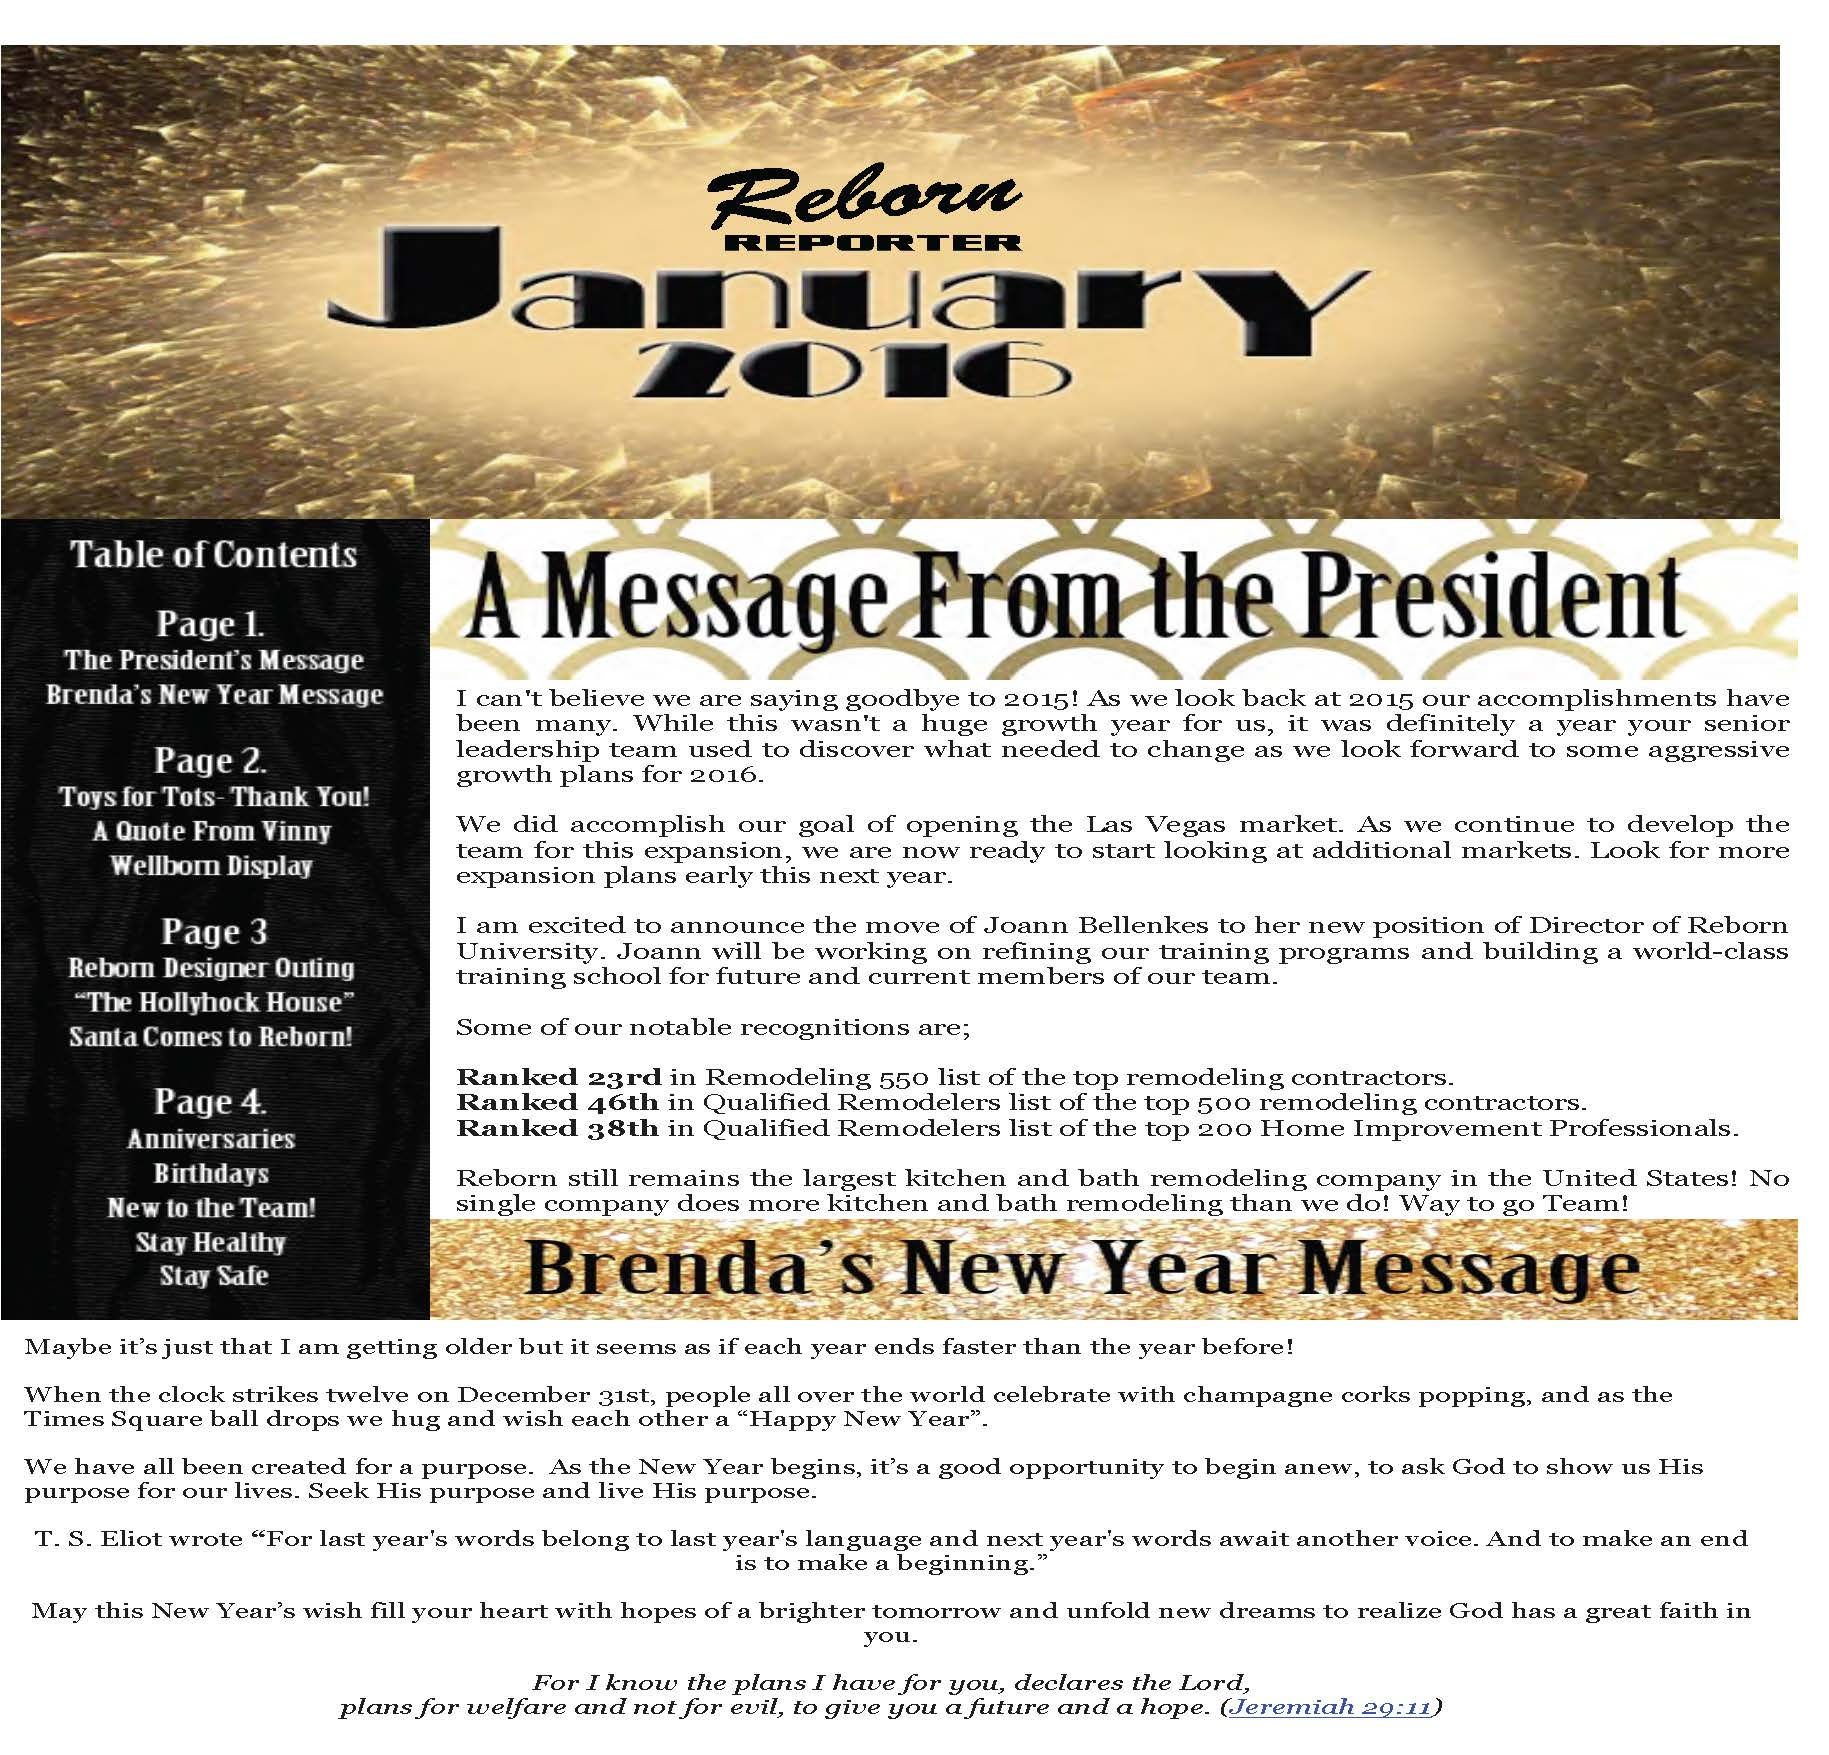 2016 january newsletteremail_page_1